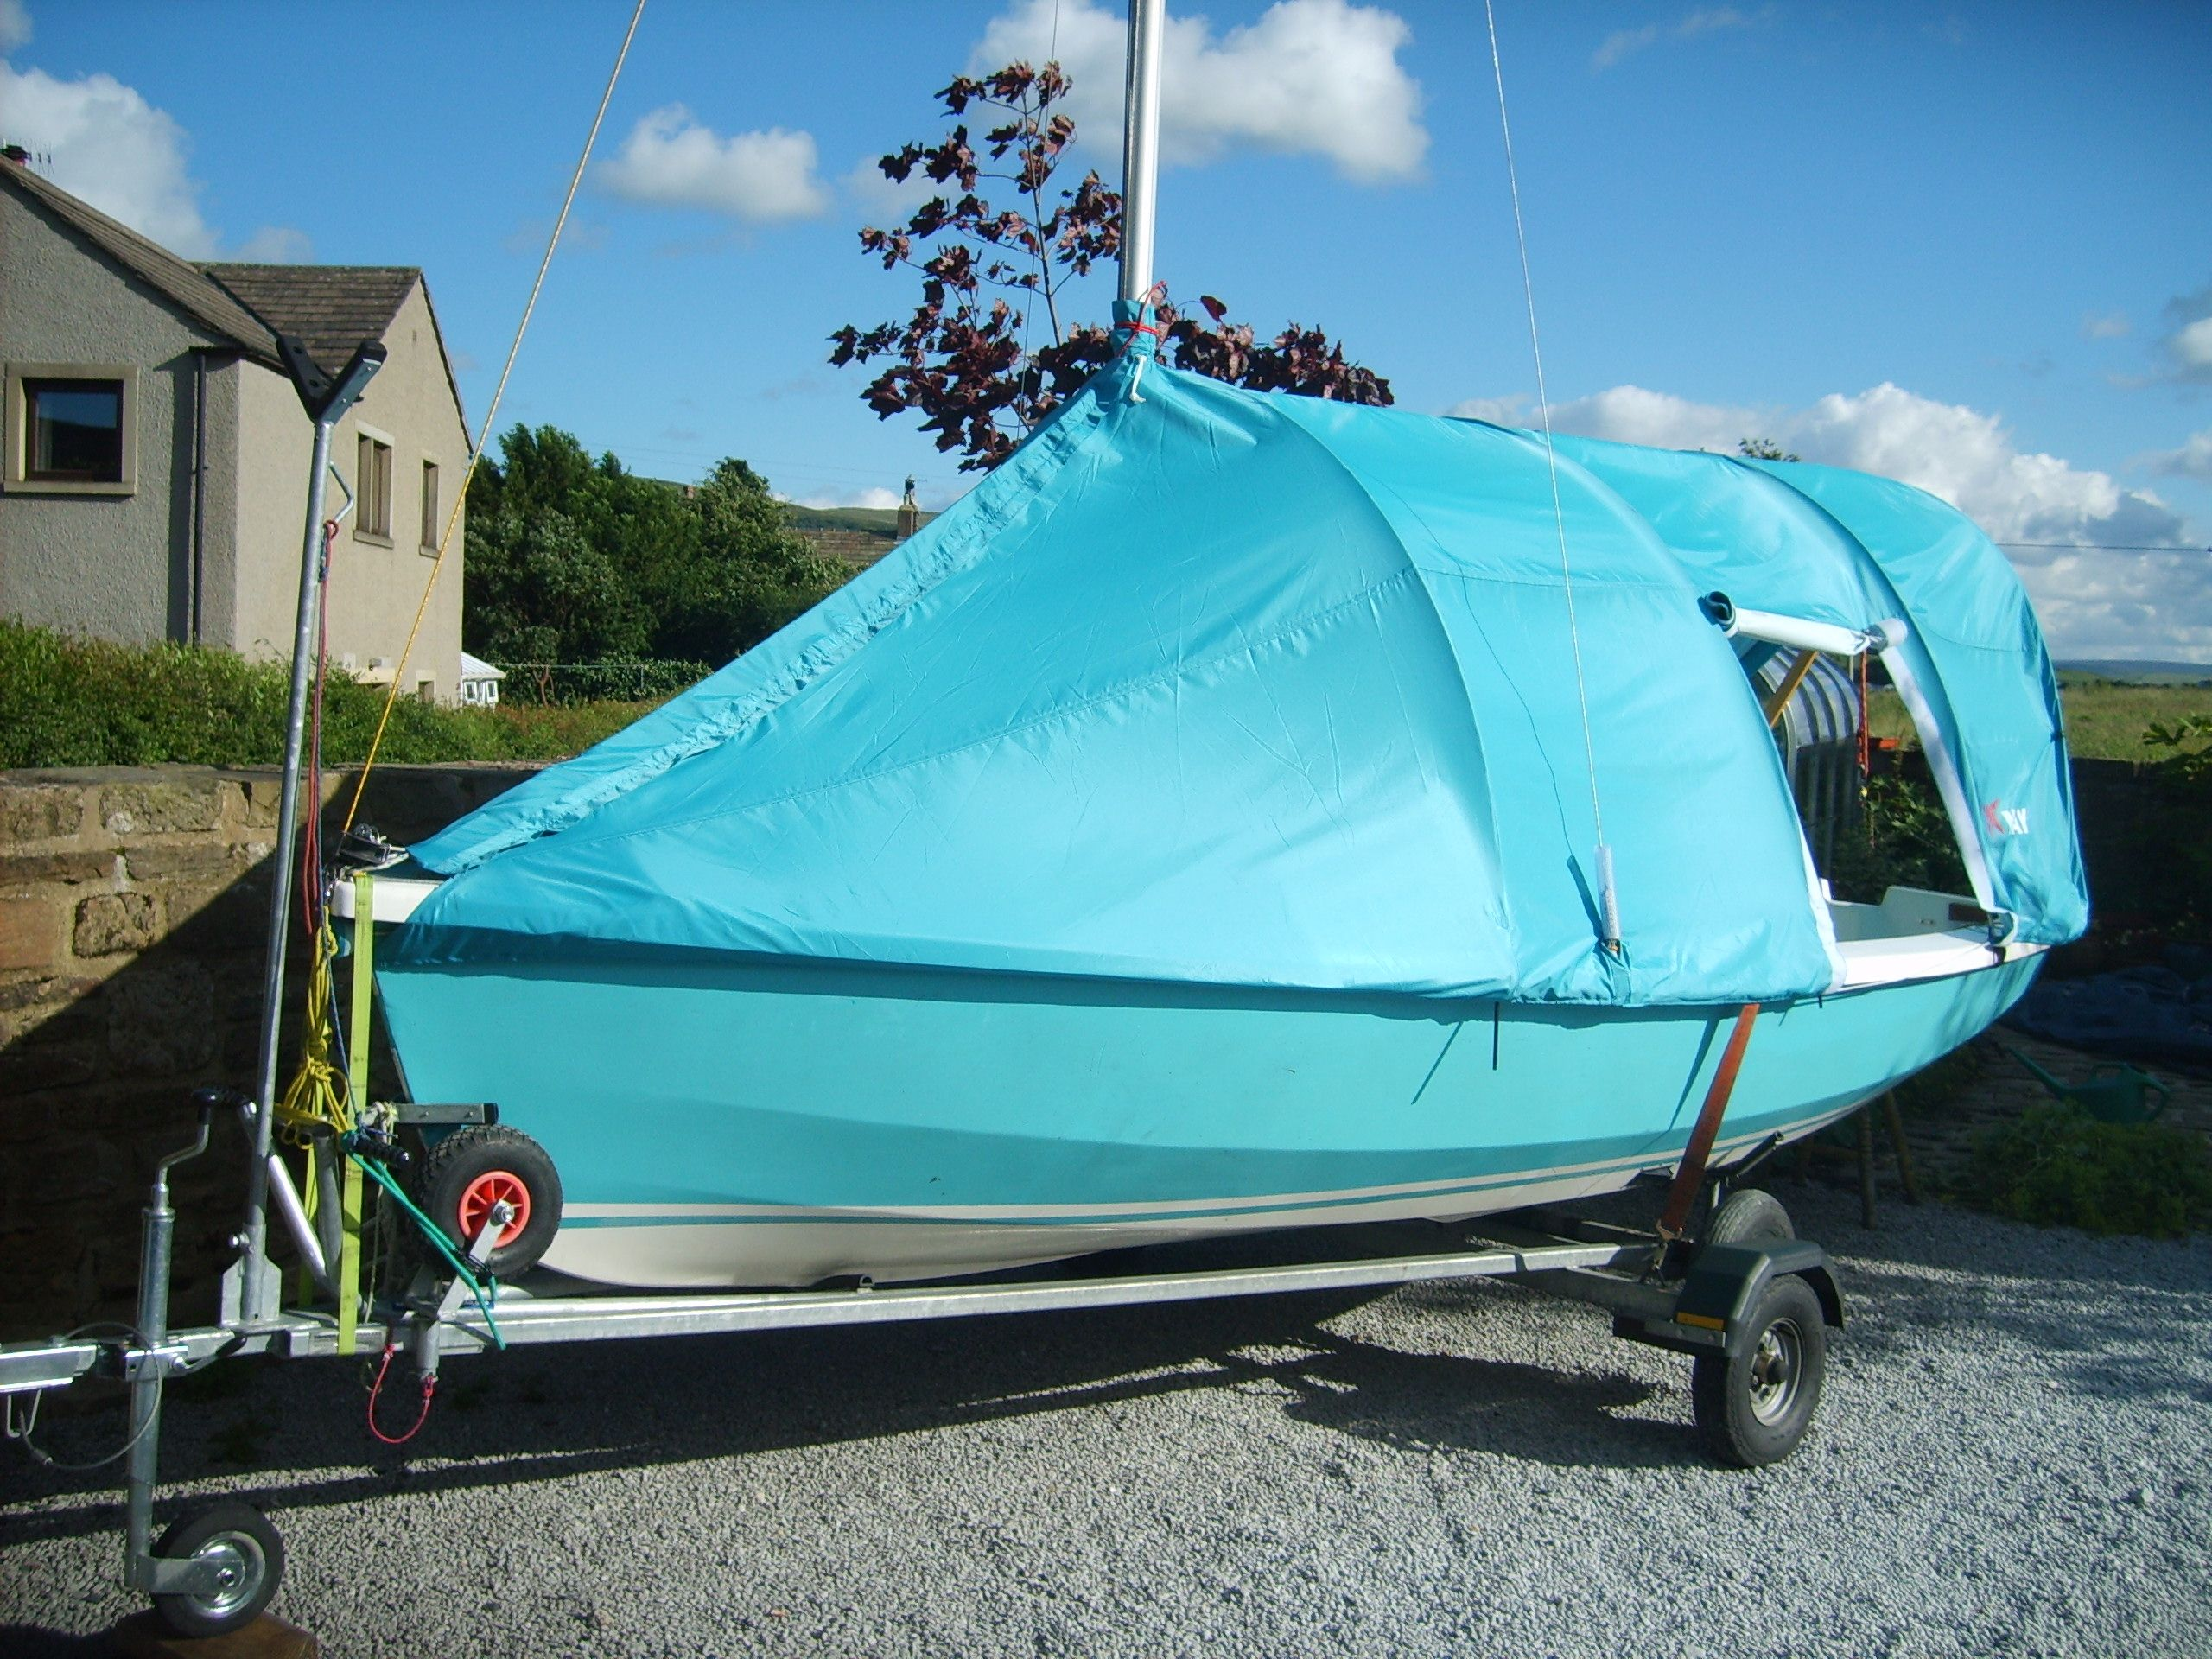 North-West Sails offers this Wayfarer Tent. Slick but too matchy-matchy & North-West Sails offers this Wayfarer Tent. Slick but too matchy ...